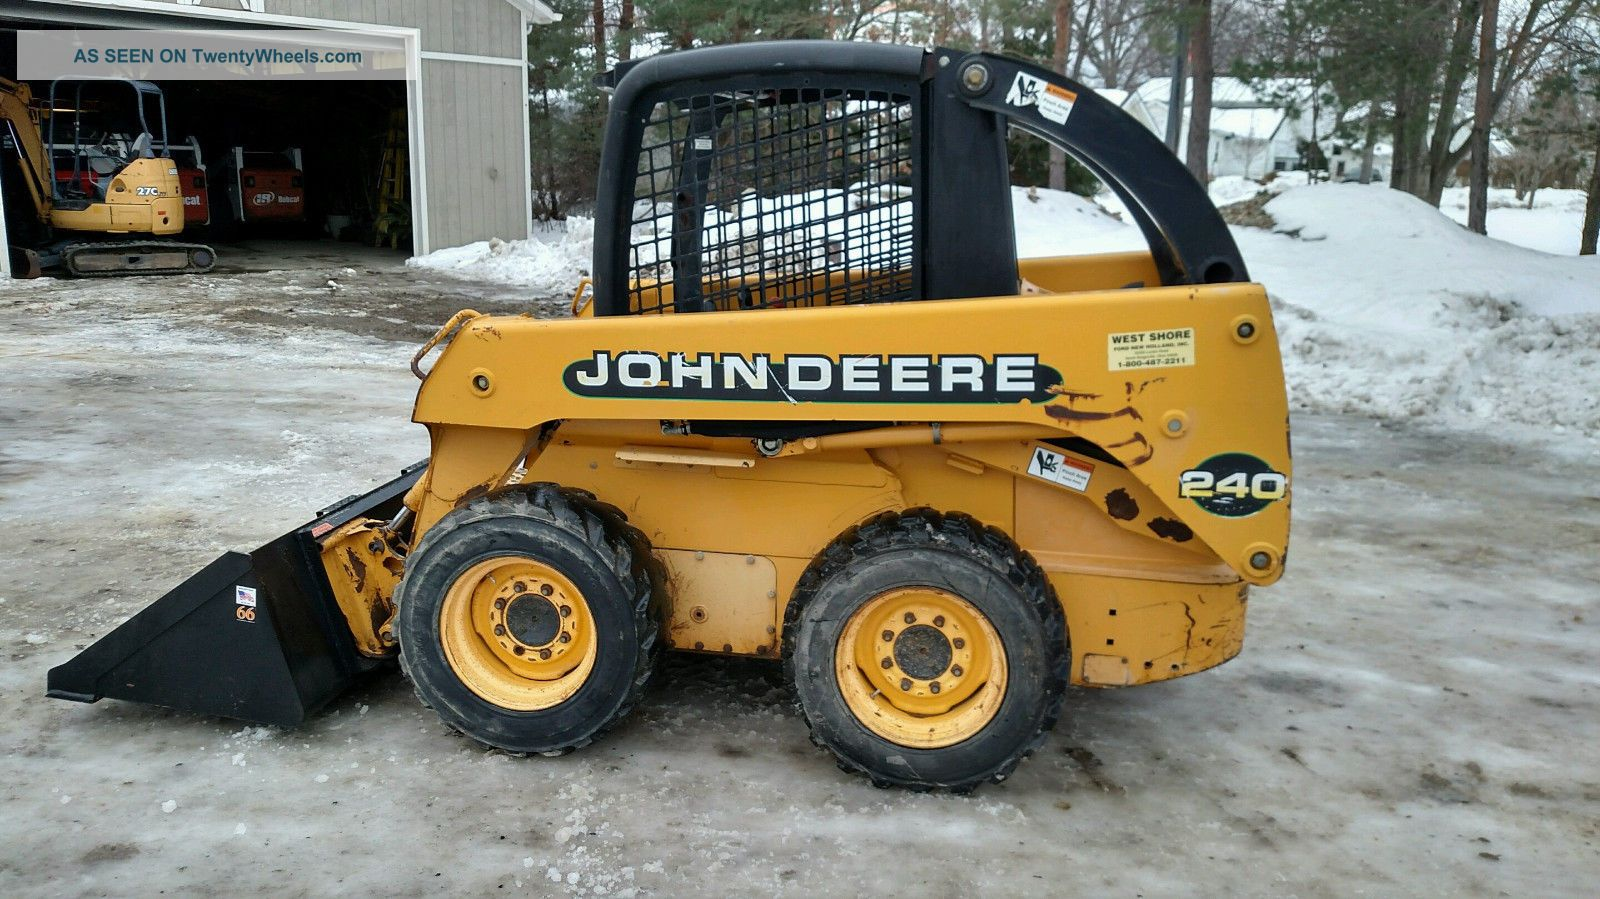 1999 John Deere 240 Skid Steer Loader Skid Steer Loaders photo